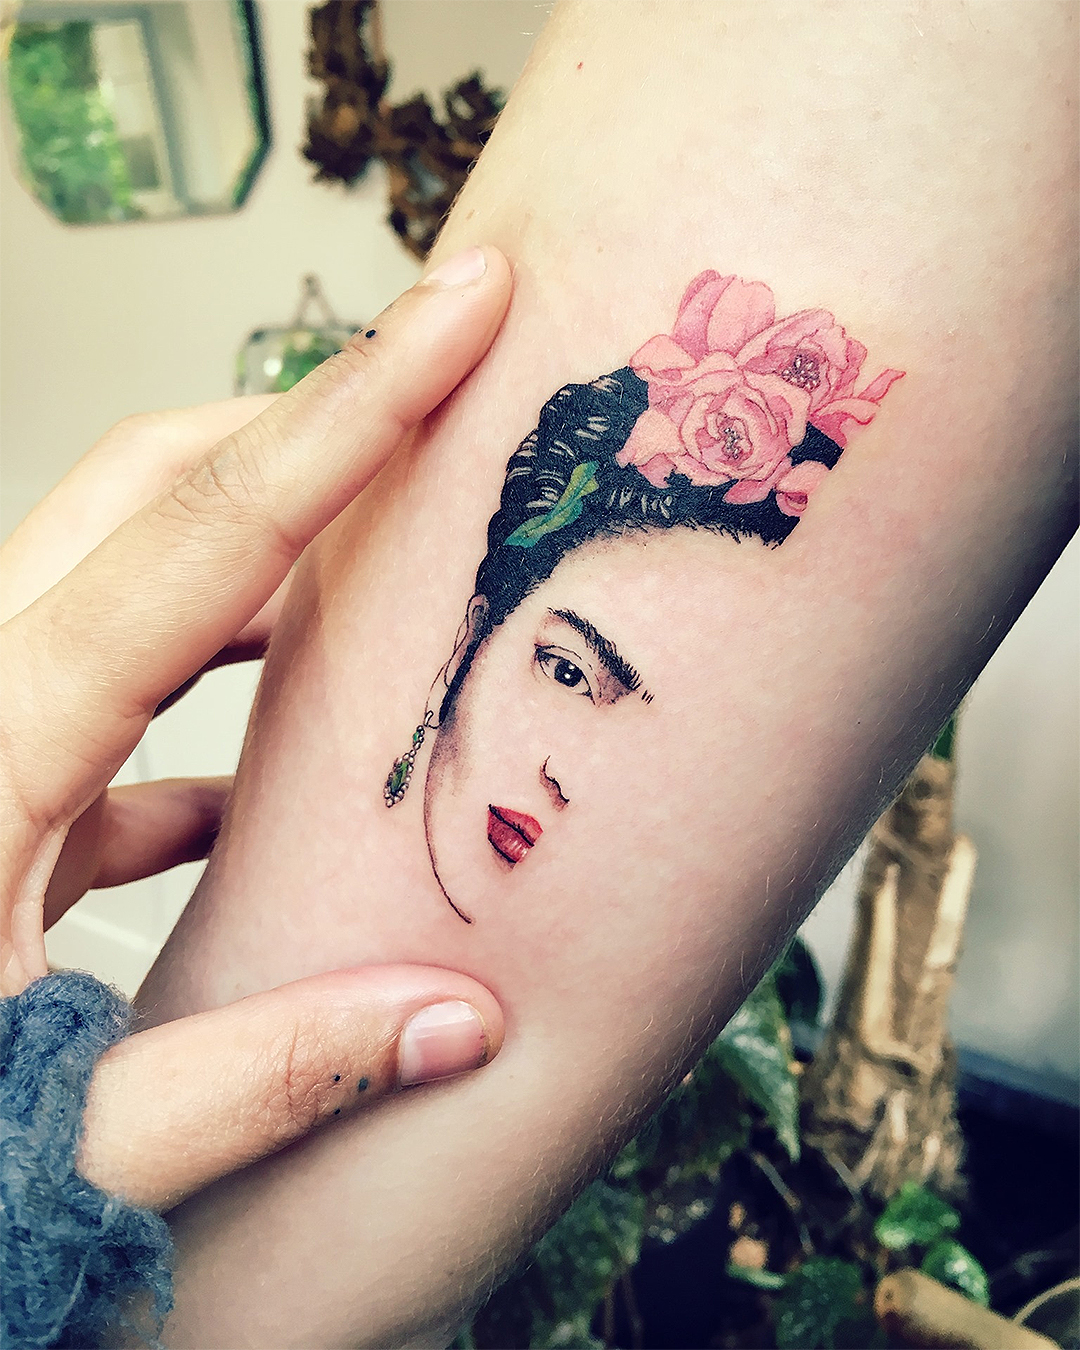 Frida's half face beautifully etched on someone's forearm.